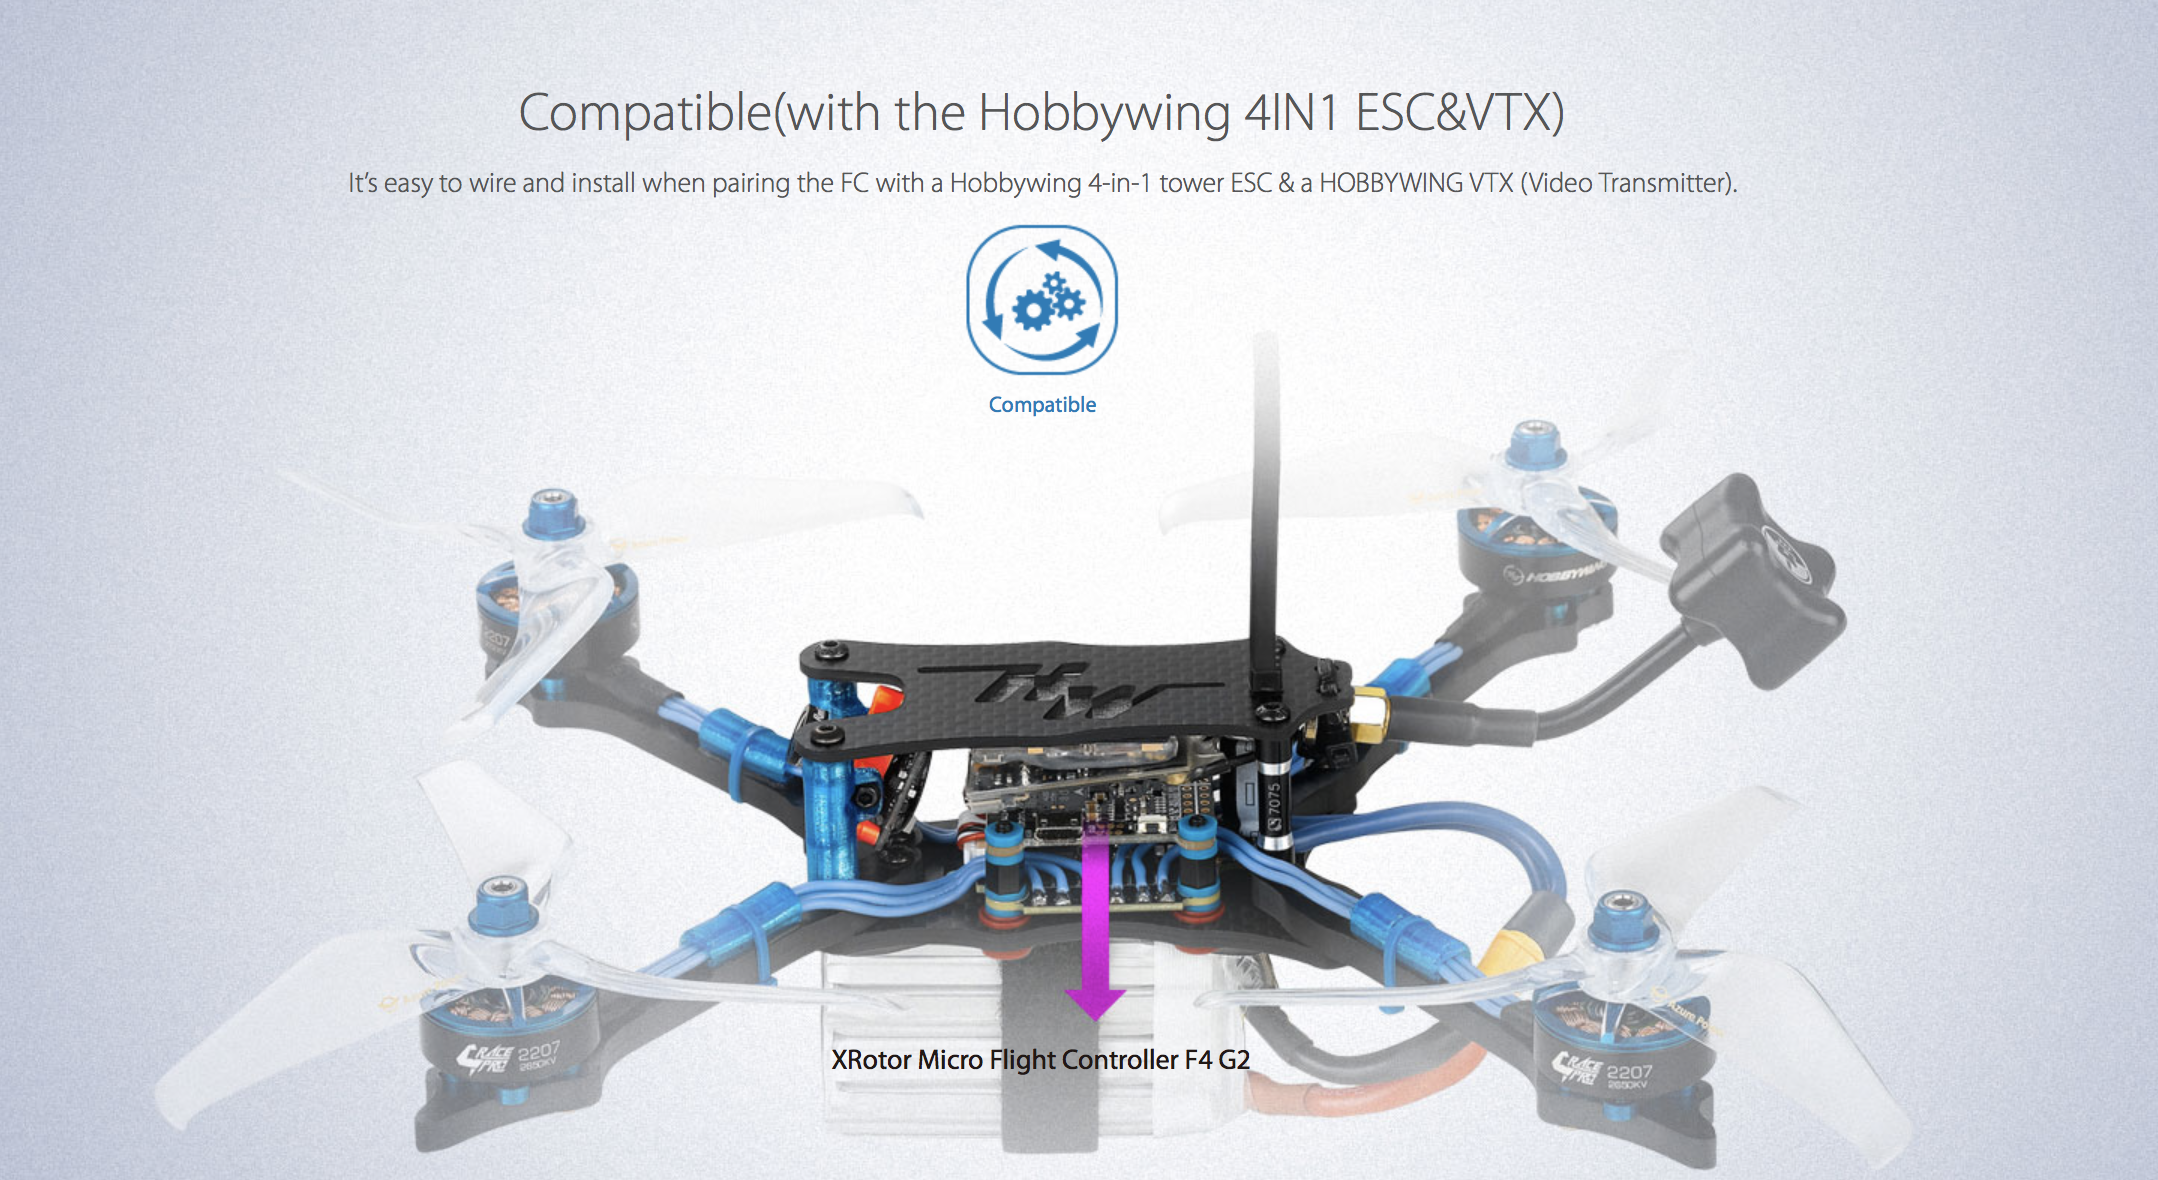 Compatible(with the Hobbywing 4IN1 ESC&VTX). It's easy to wire and install when pairing the FC with a Hobbywing 4-in-1 tower ESC & a HOBBYWING VTX (Video Transmitter).